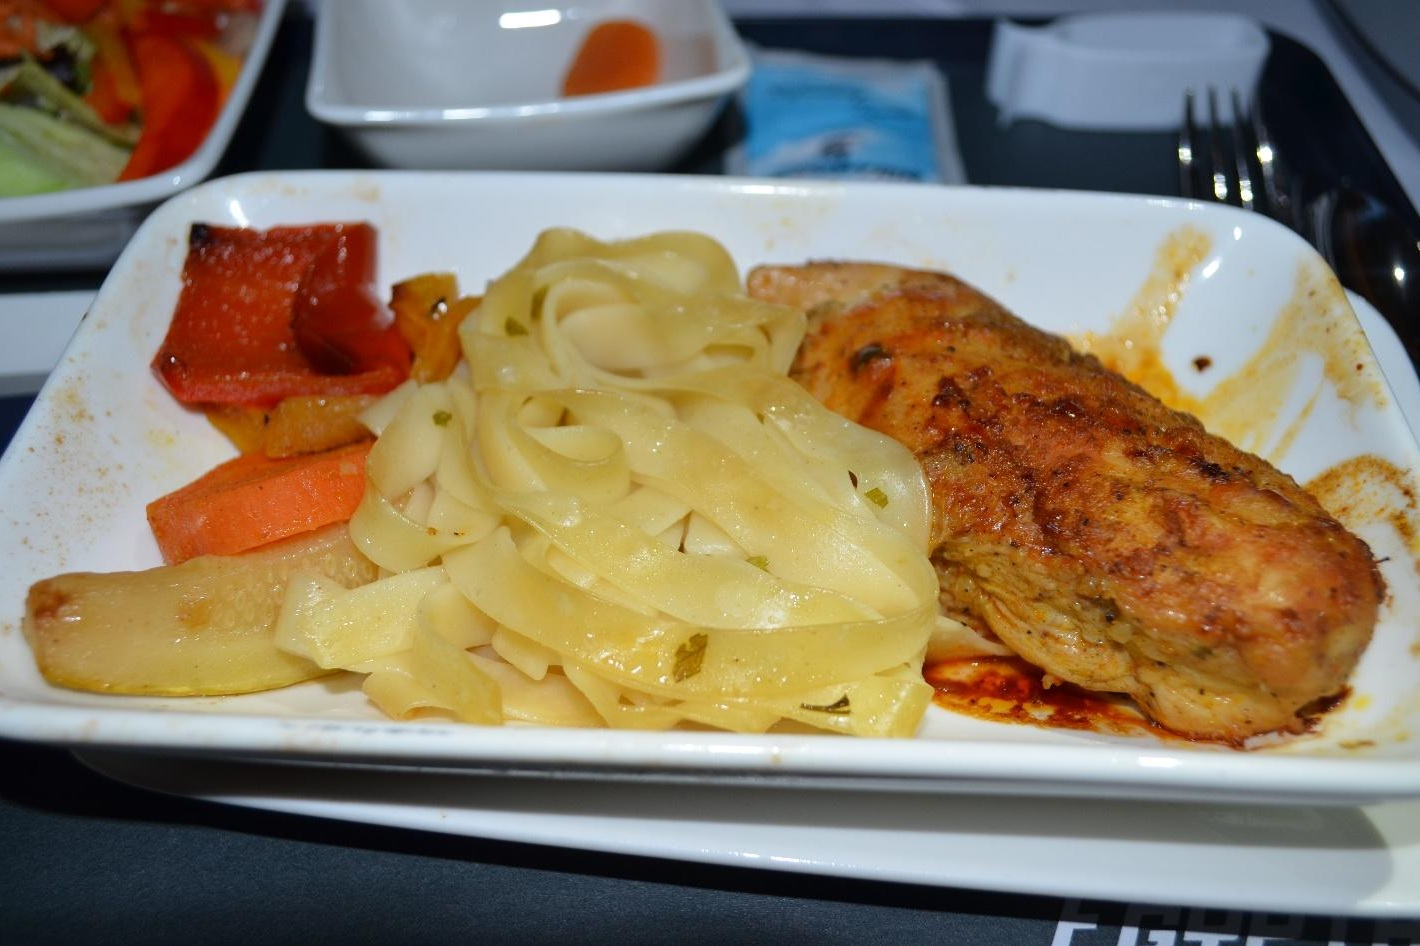 EgyptAir 787 business class – Roasted chicken breast with barbecue sauce